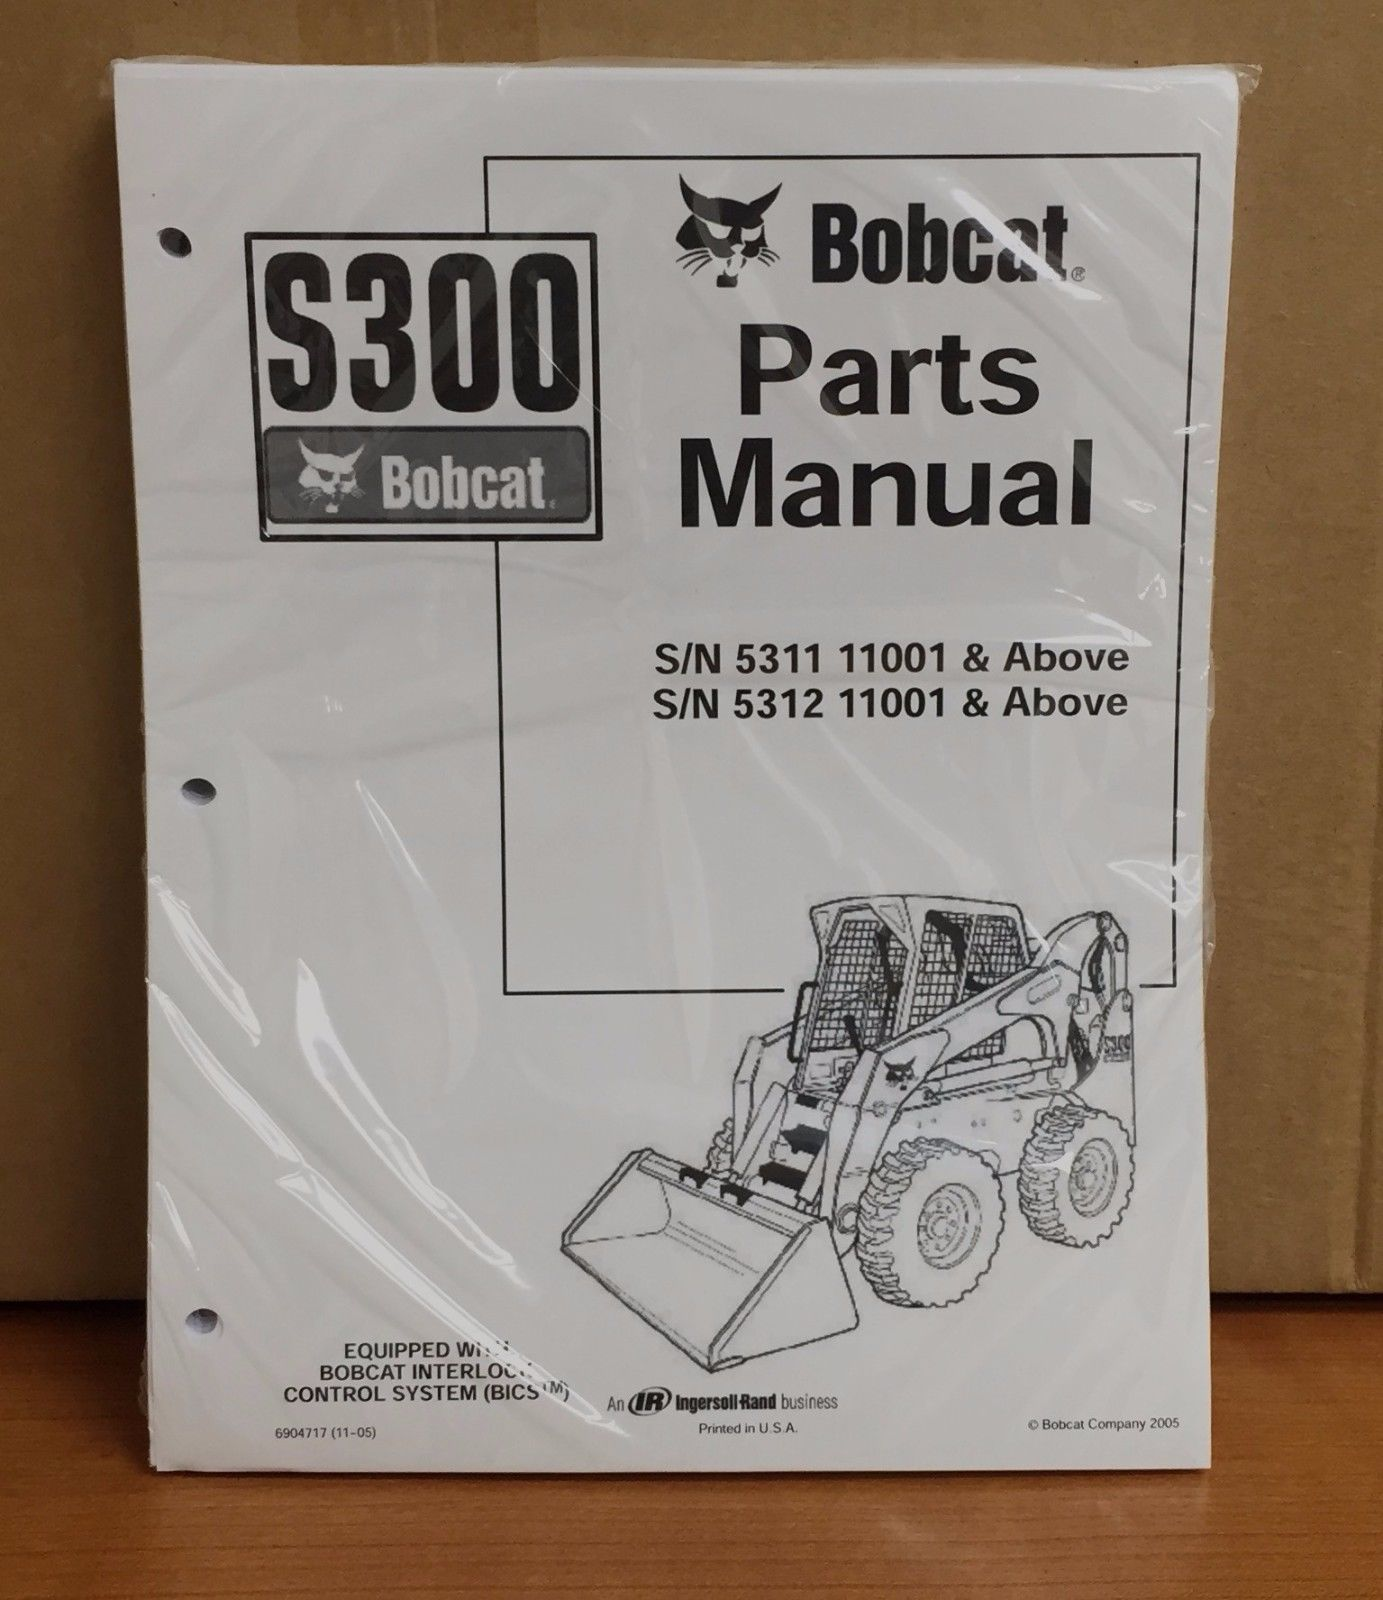 hight resolution of bobcat s300 parts manual book skid steer and 50 similar items 11